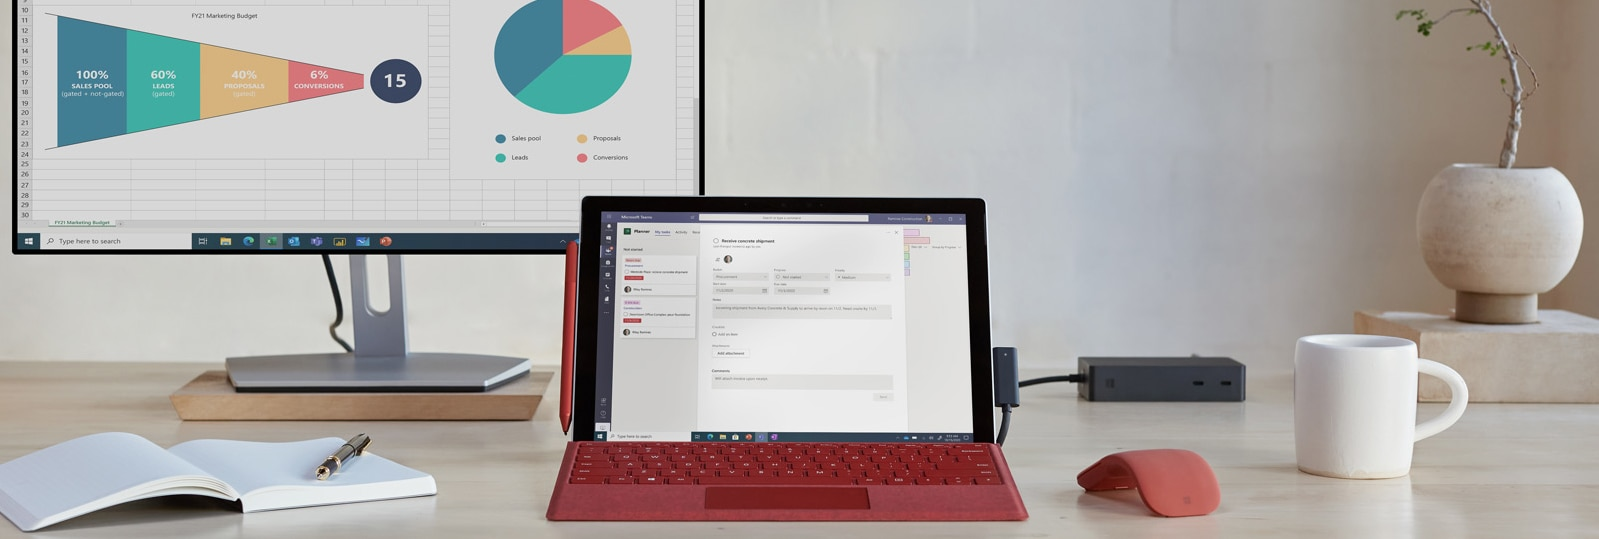 Surface Pro 7+ is shown on a home office desk with an external monitor and accessories